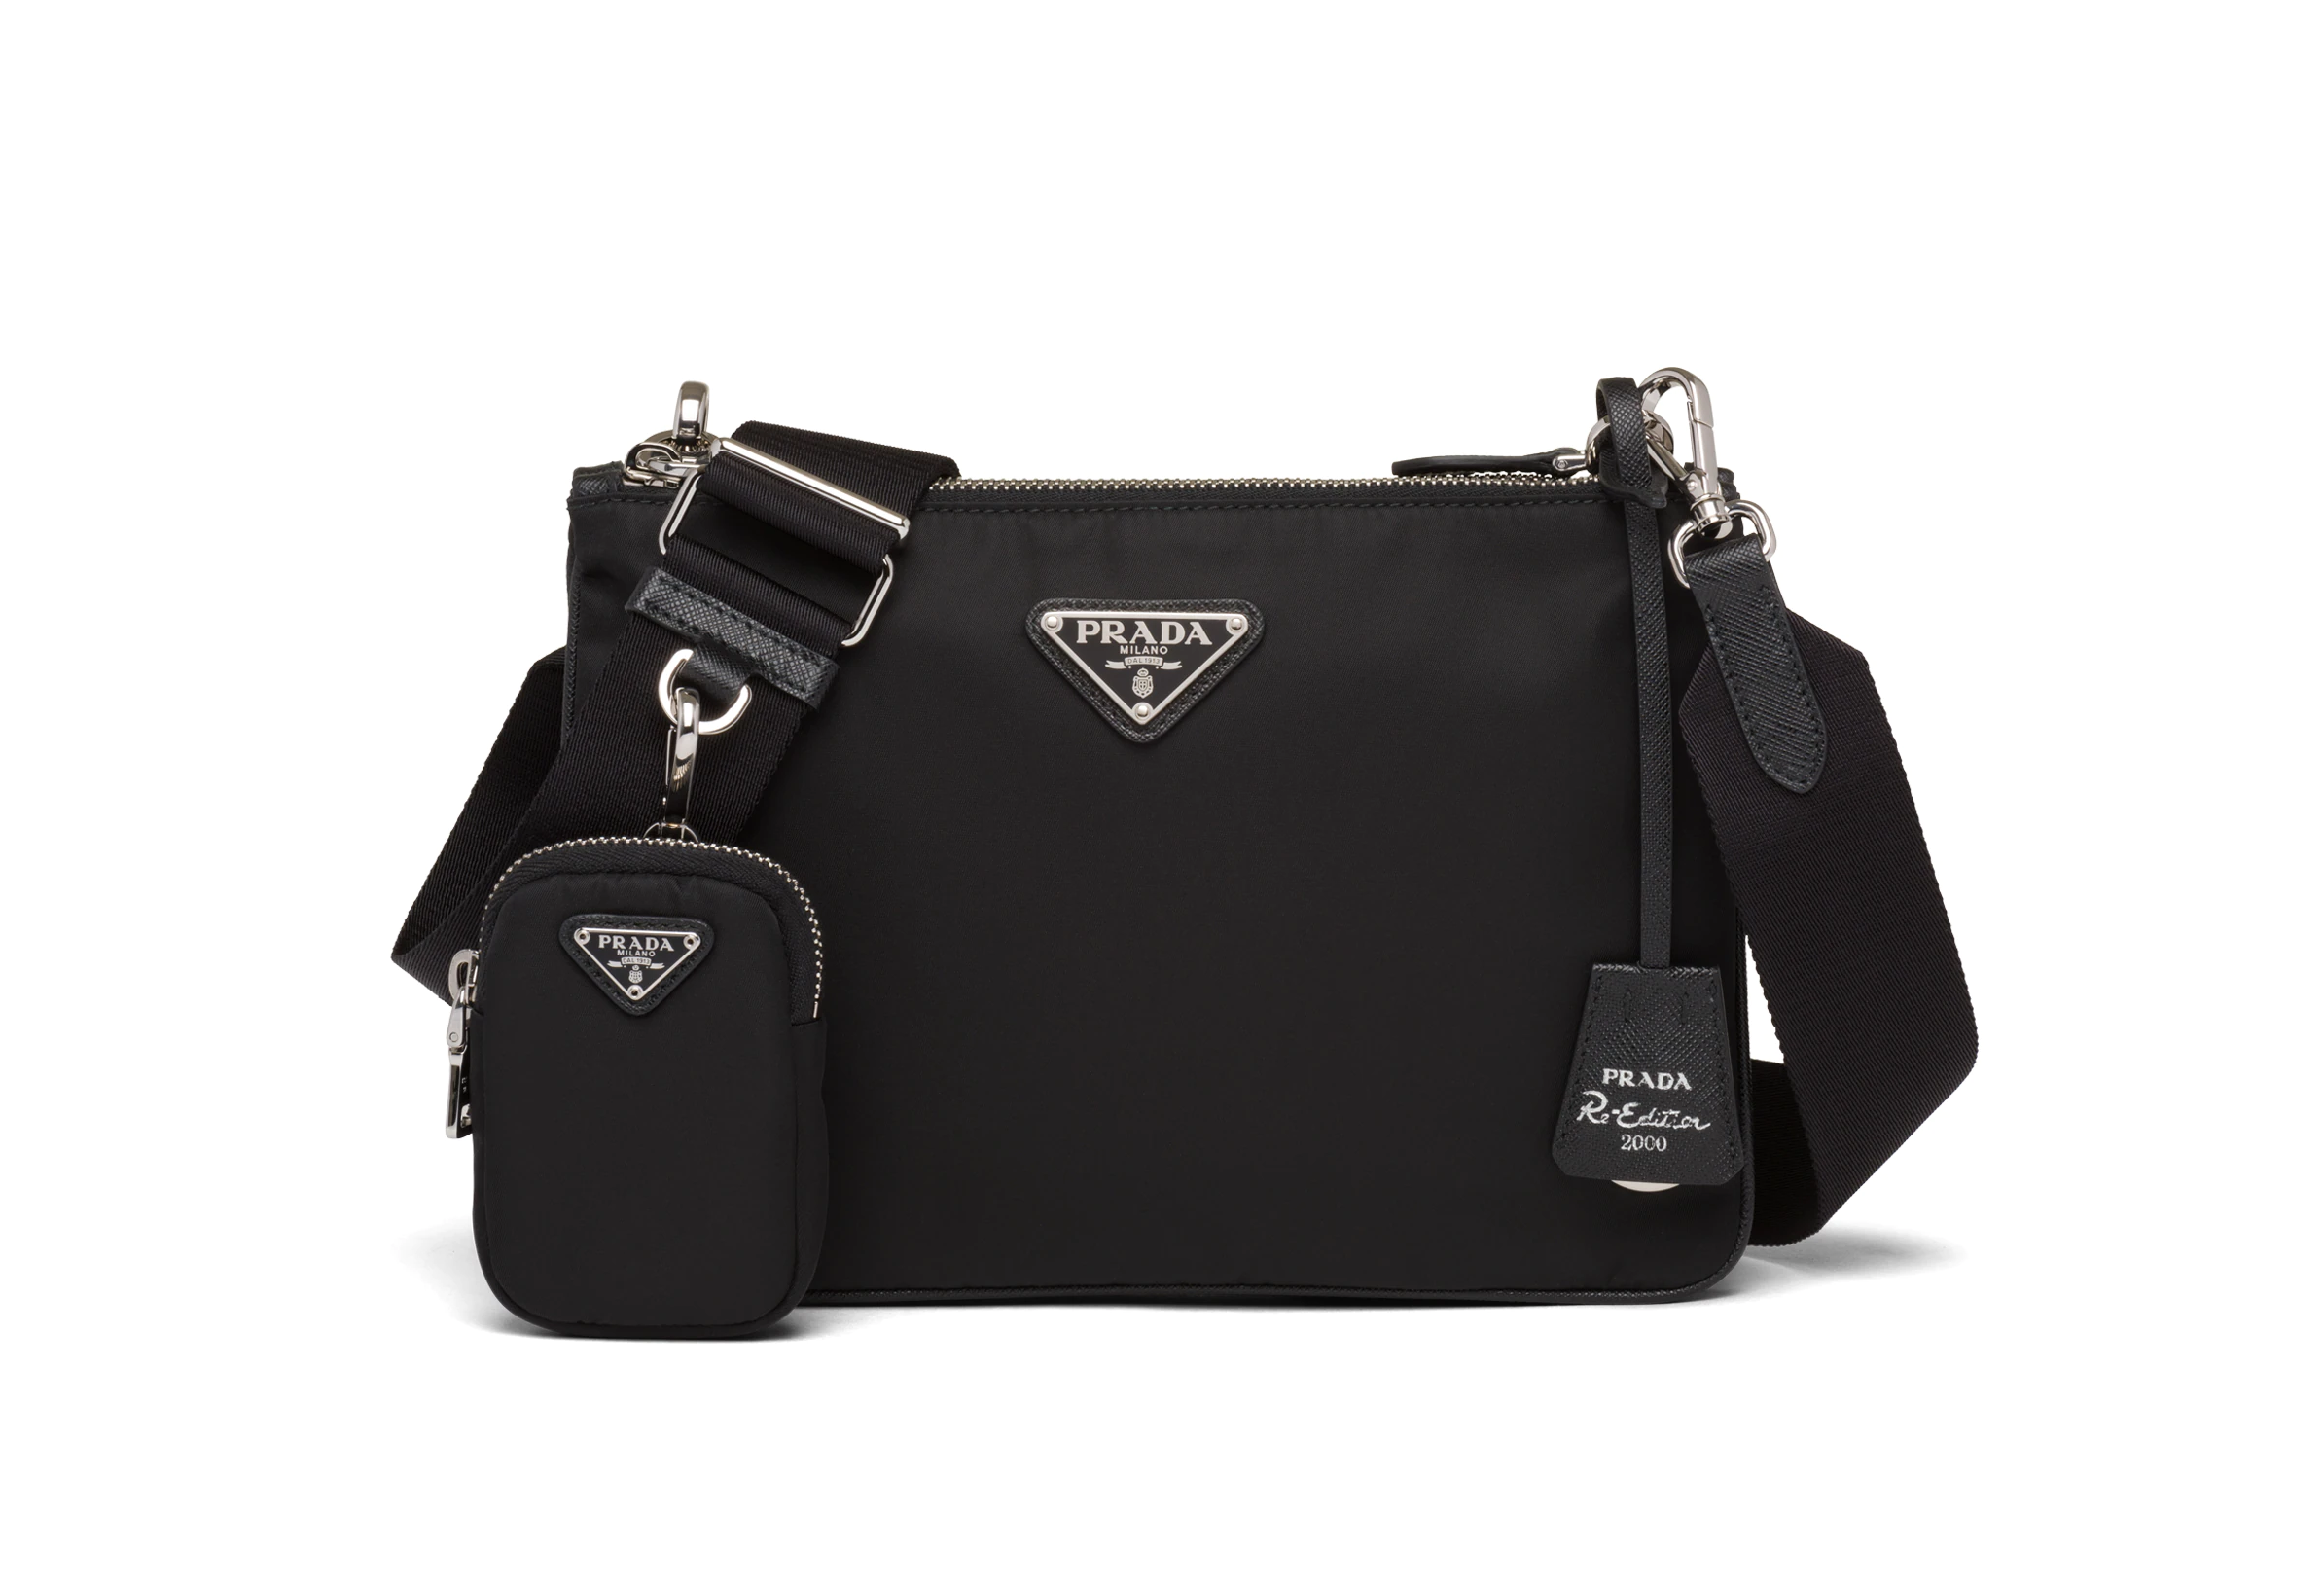 What Is the Prada Re Edition Bag